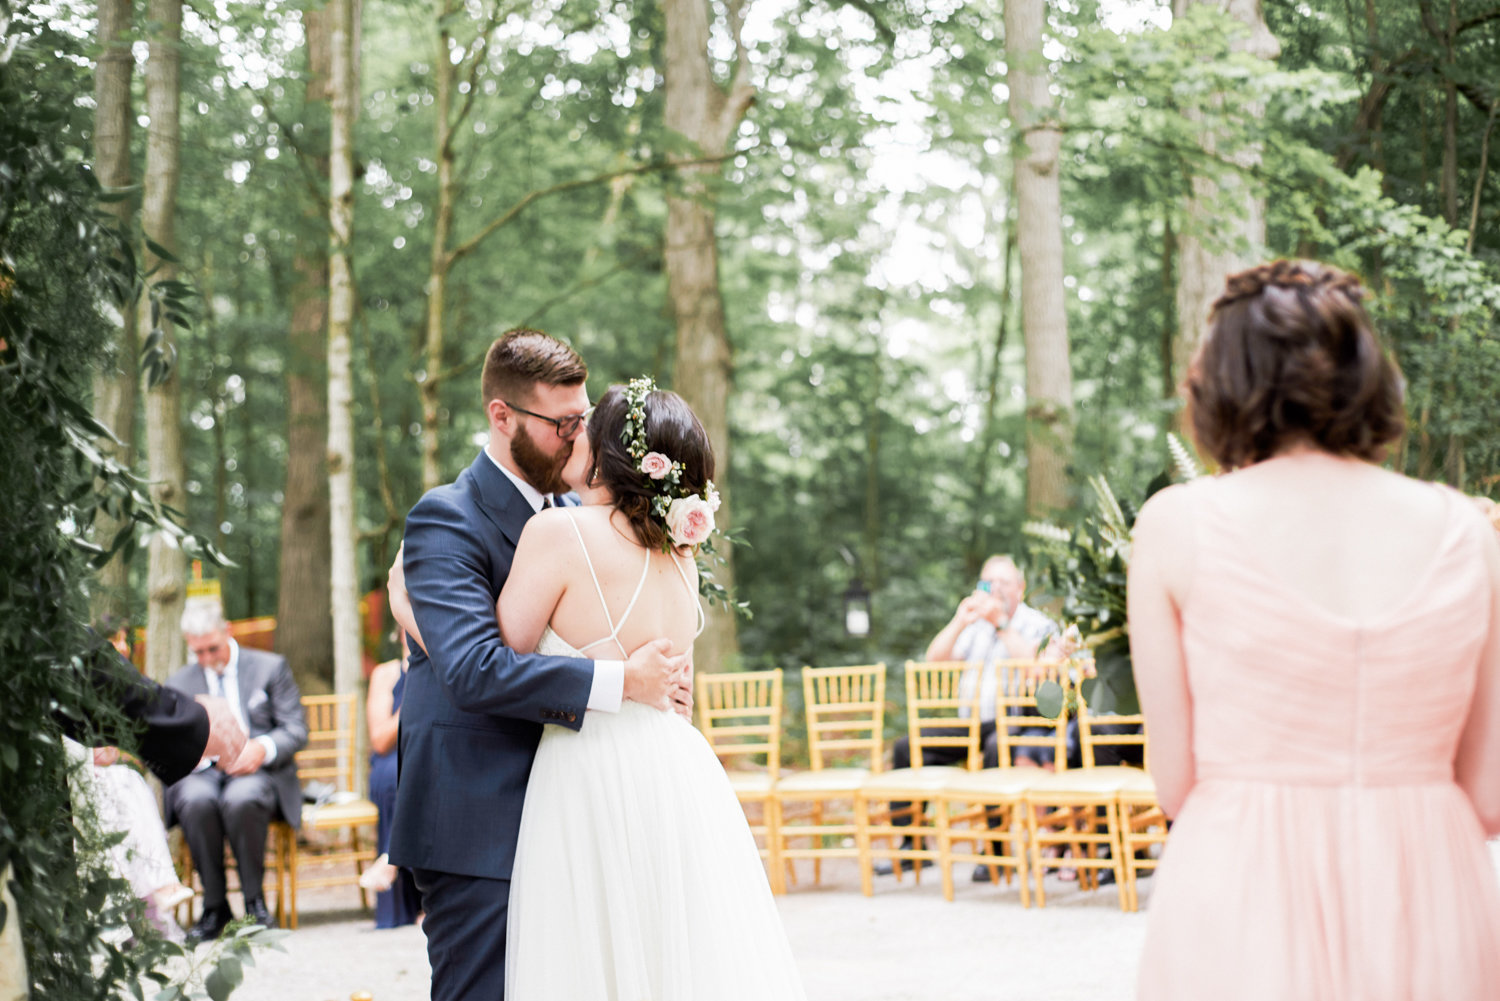 First kiss at wedding ceremony at the Kortright Centre